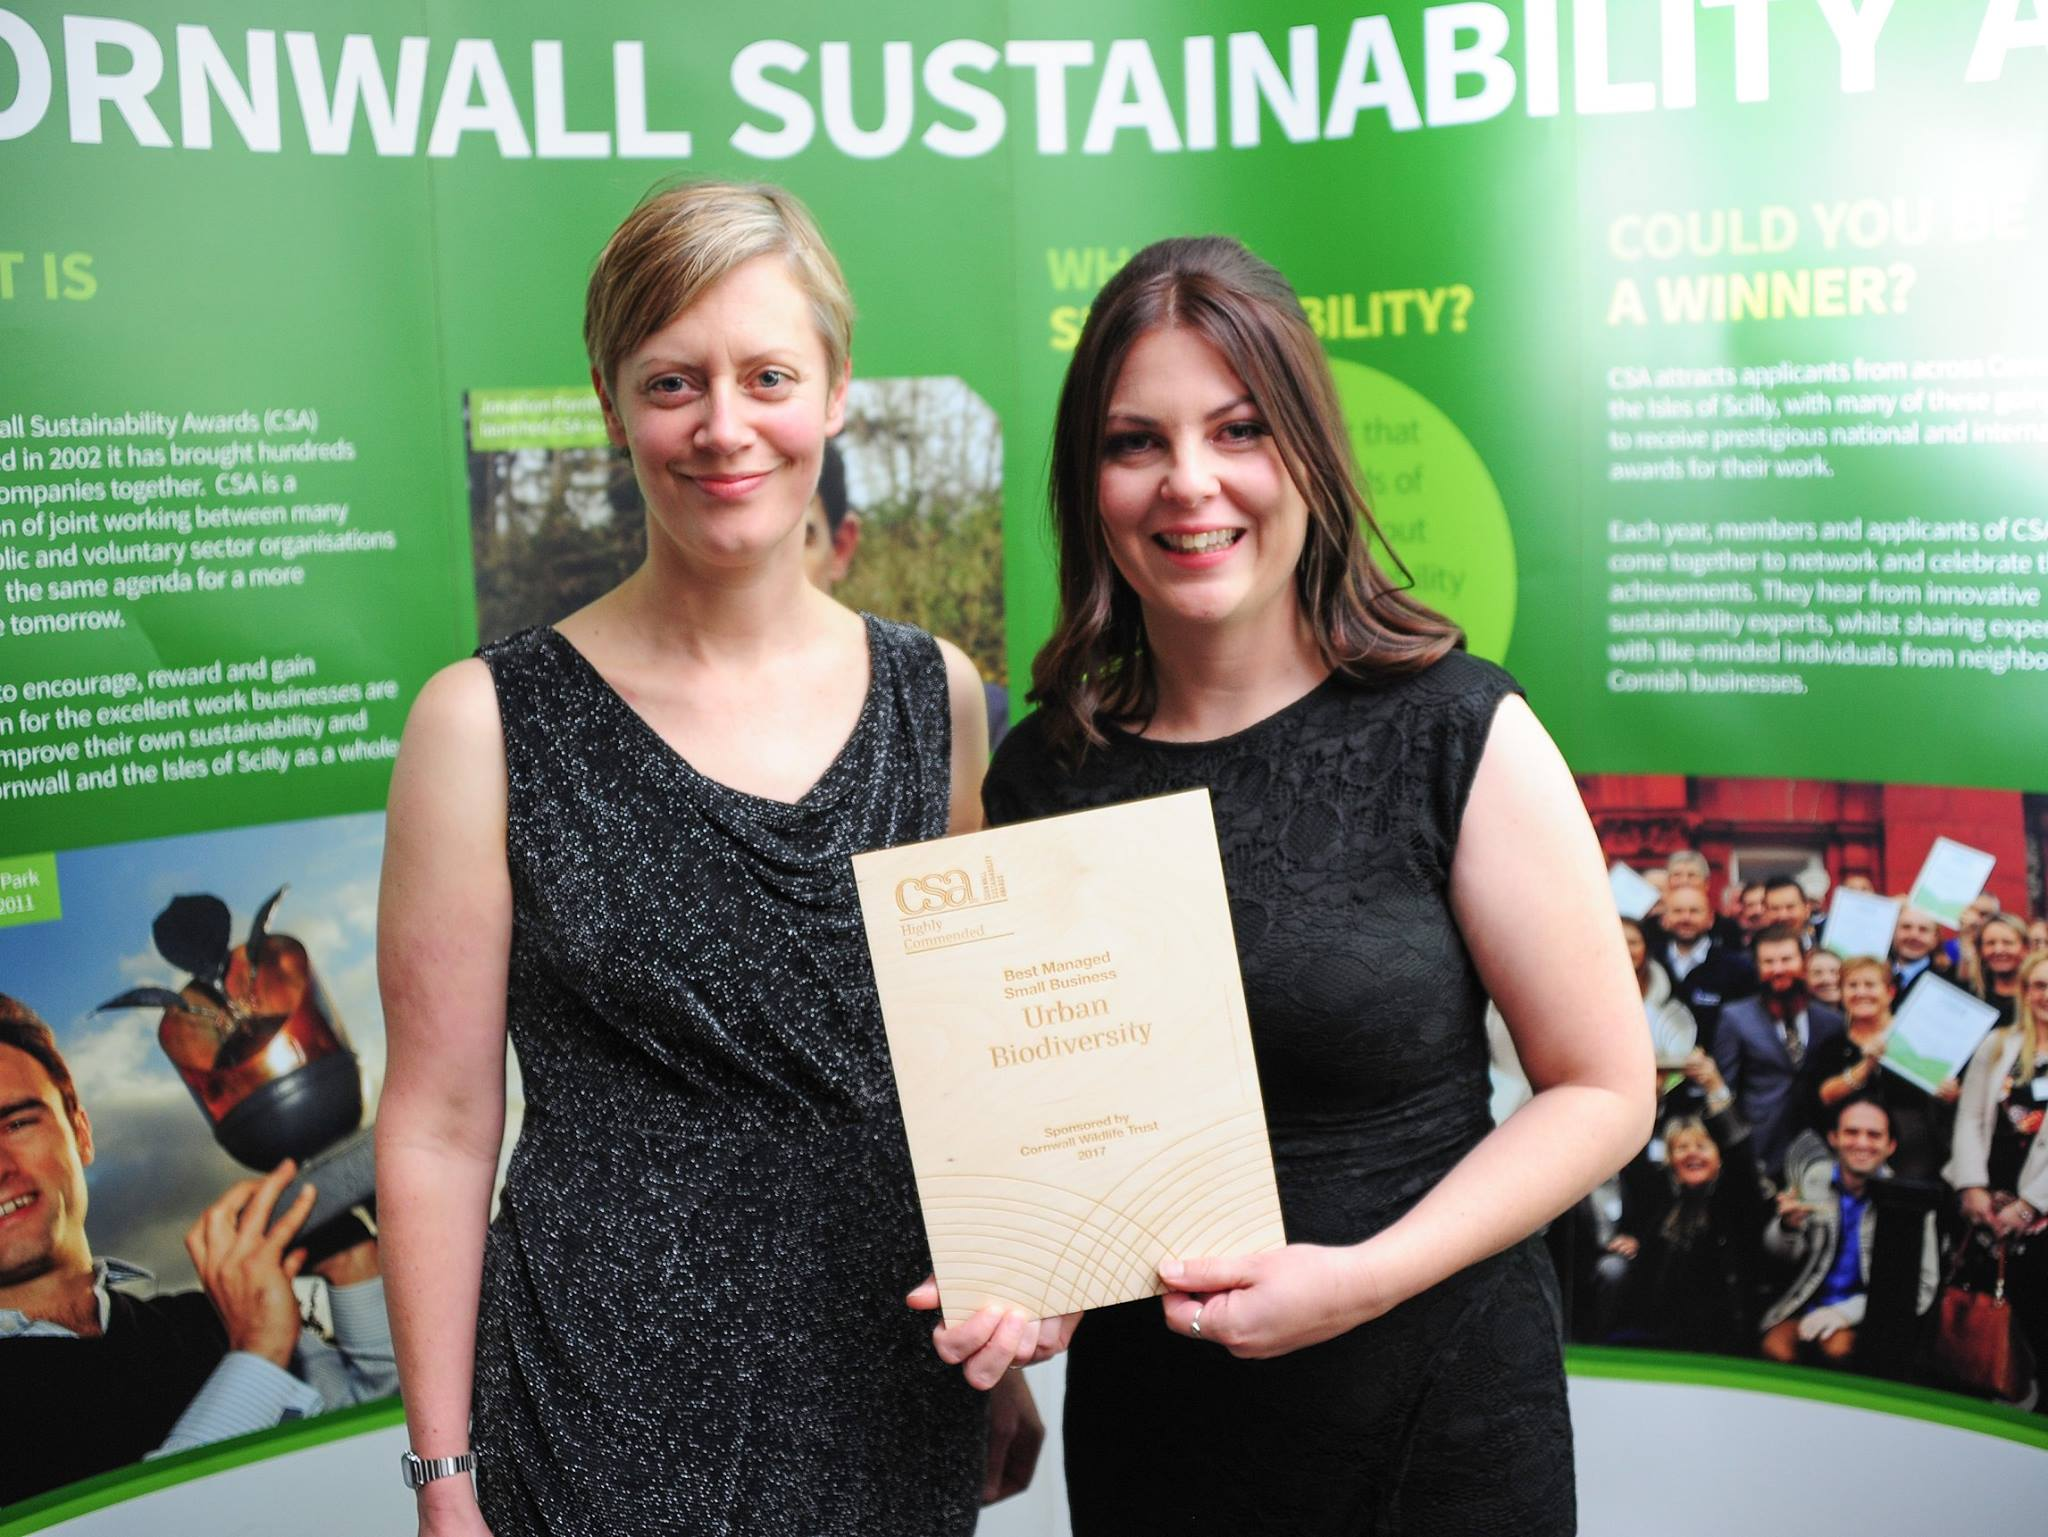 Newquay Community Orchard has wonthe Best Contribution to Sustainability